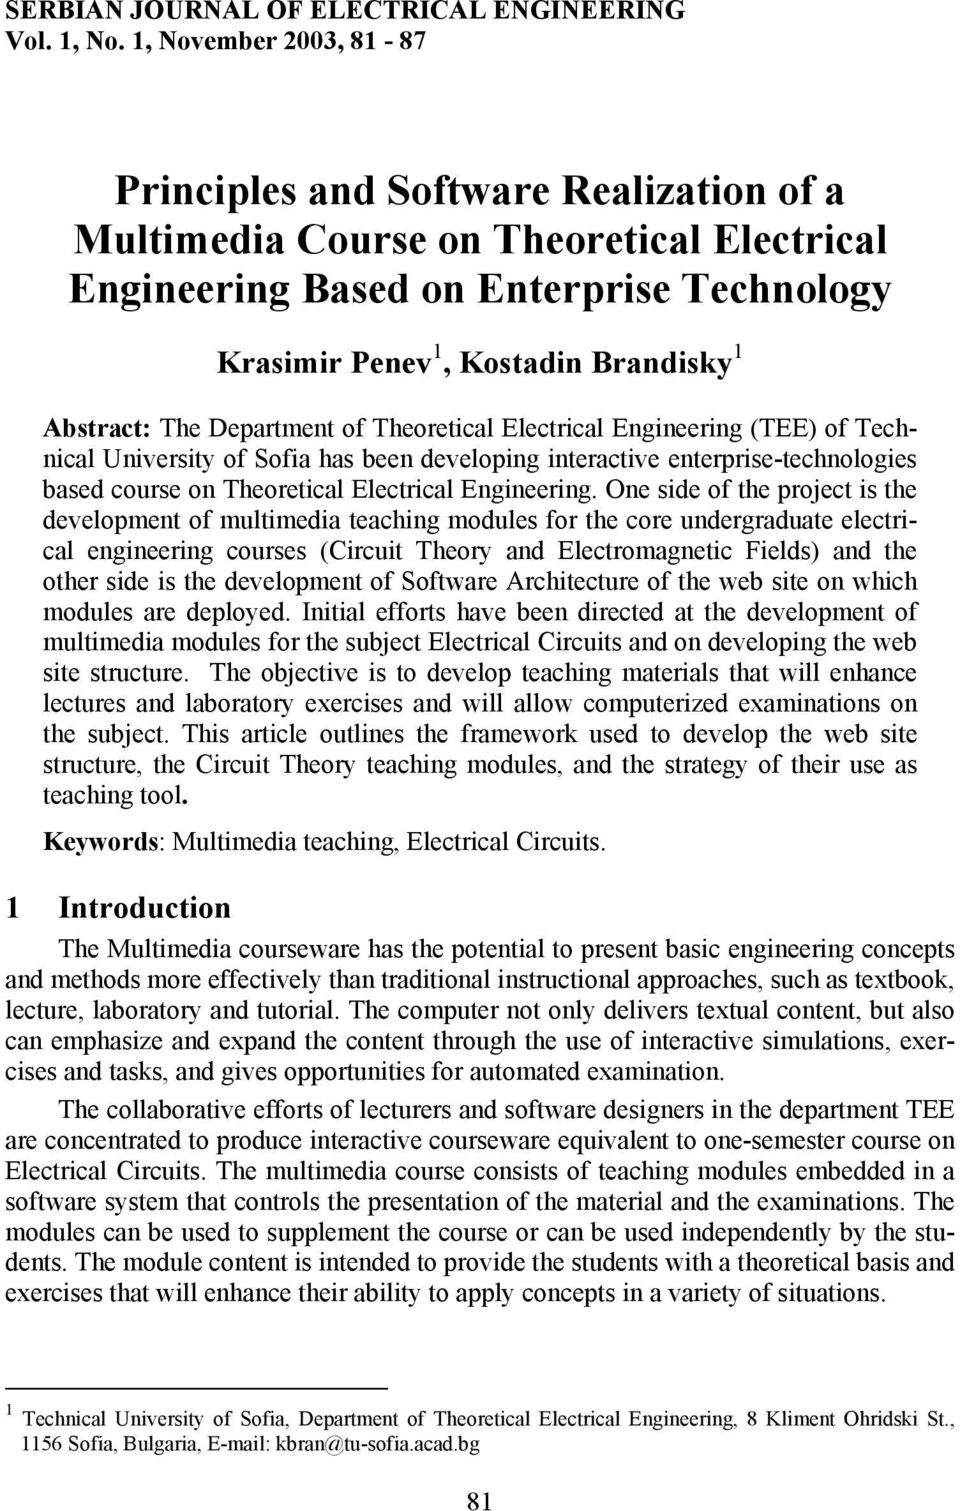 Abstract: The Department of Theoretical Electrical Engineering (TEE) of Technical University of Sofia has been developing interactive enterprise-technologies based course on Theoretical Electrical